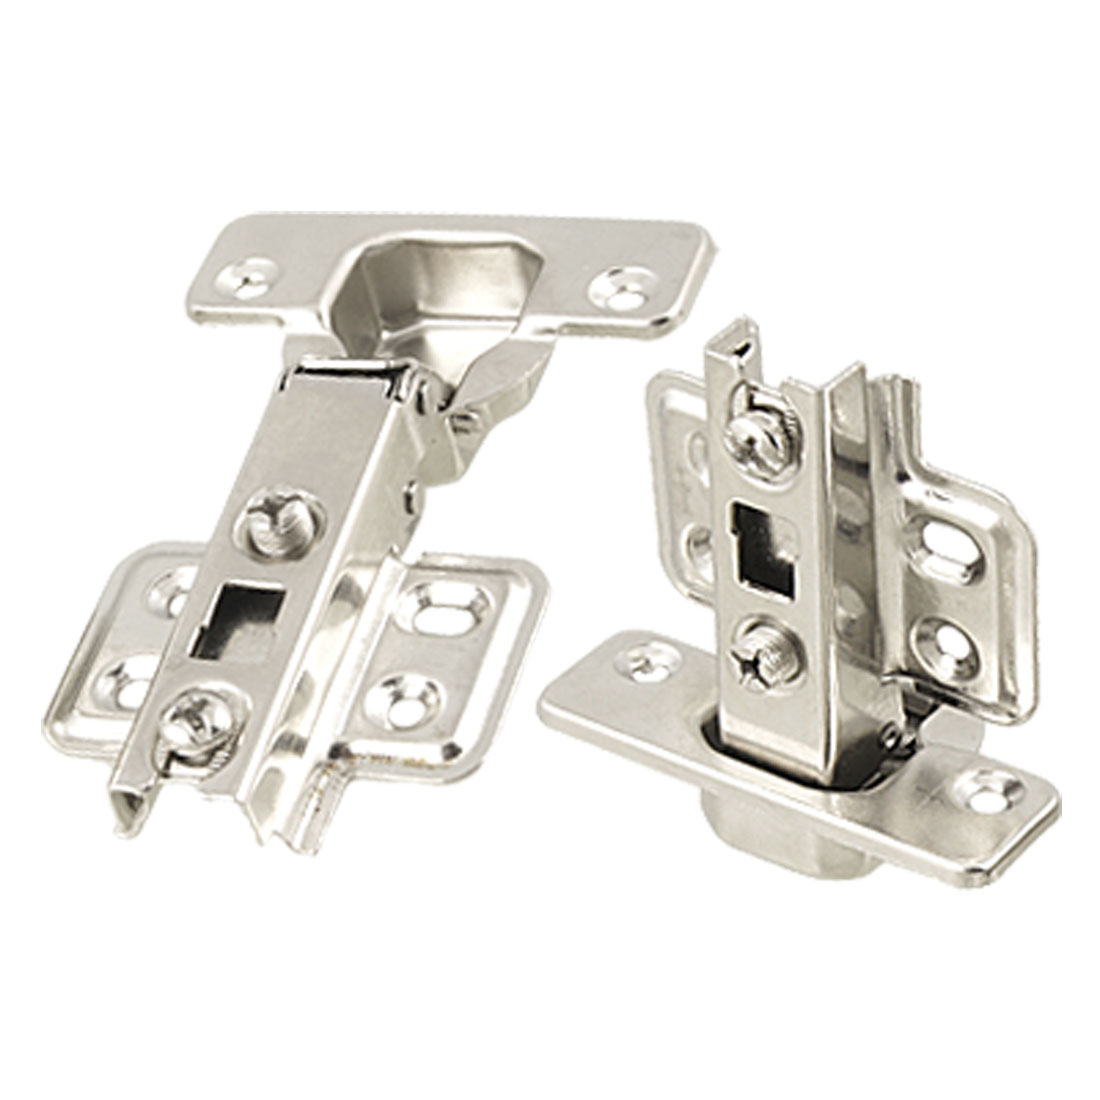 2 Pcs Stainless Steel Cabinet Door Hinge Concealed Inset Manual Close